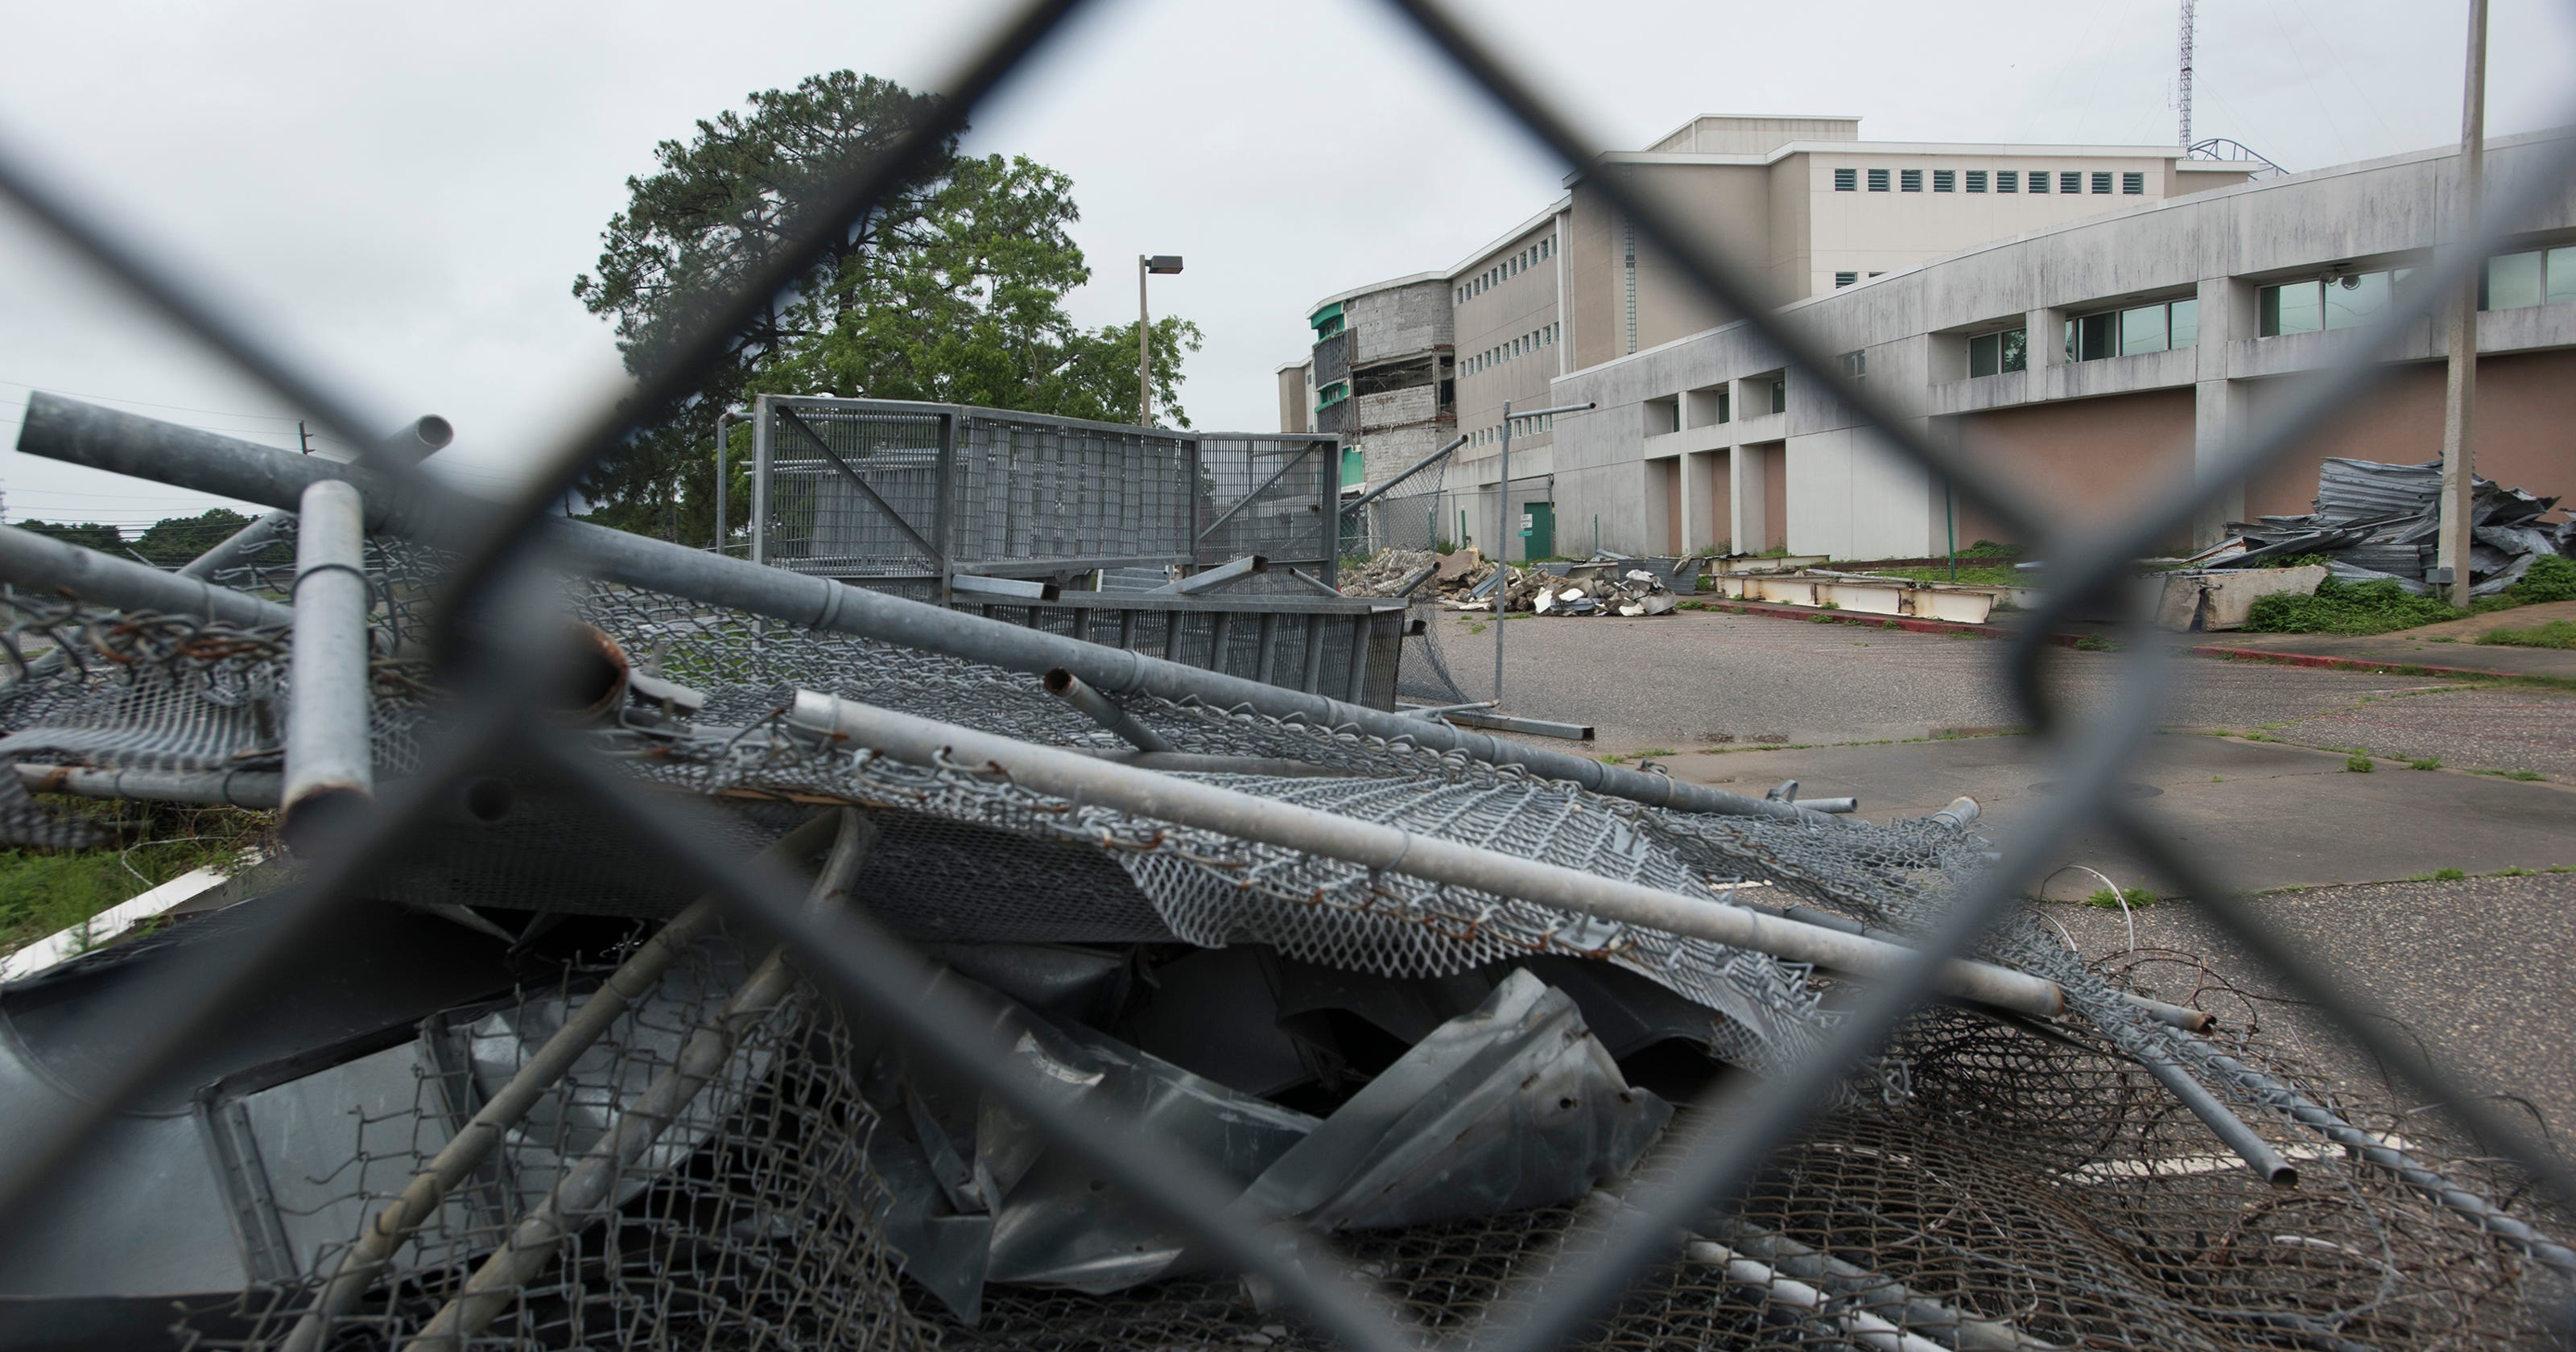 Damaged Escambia County jail may finally be demolished